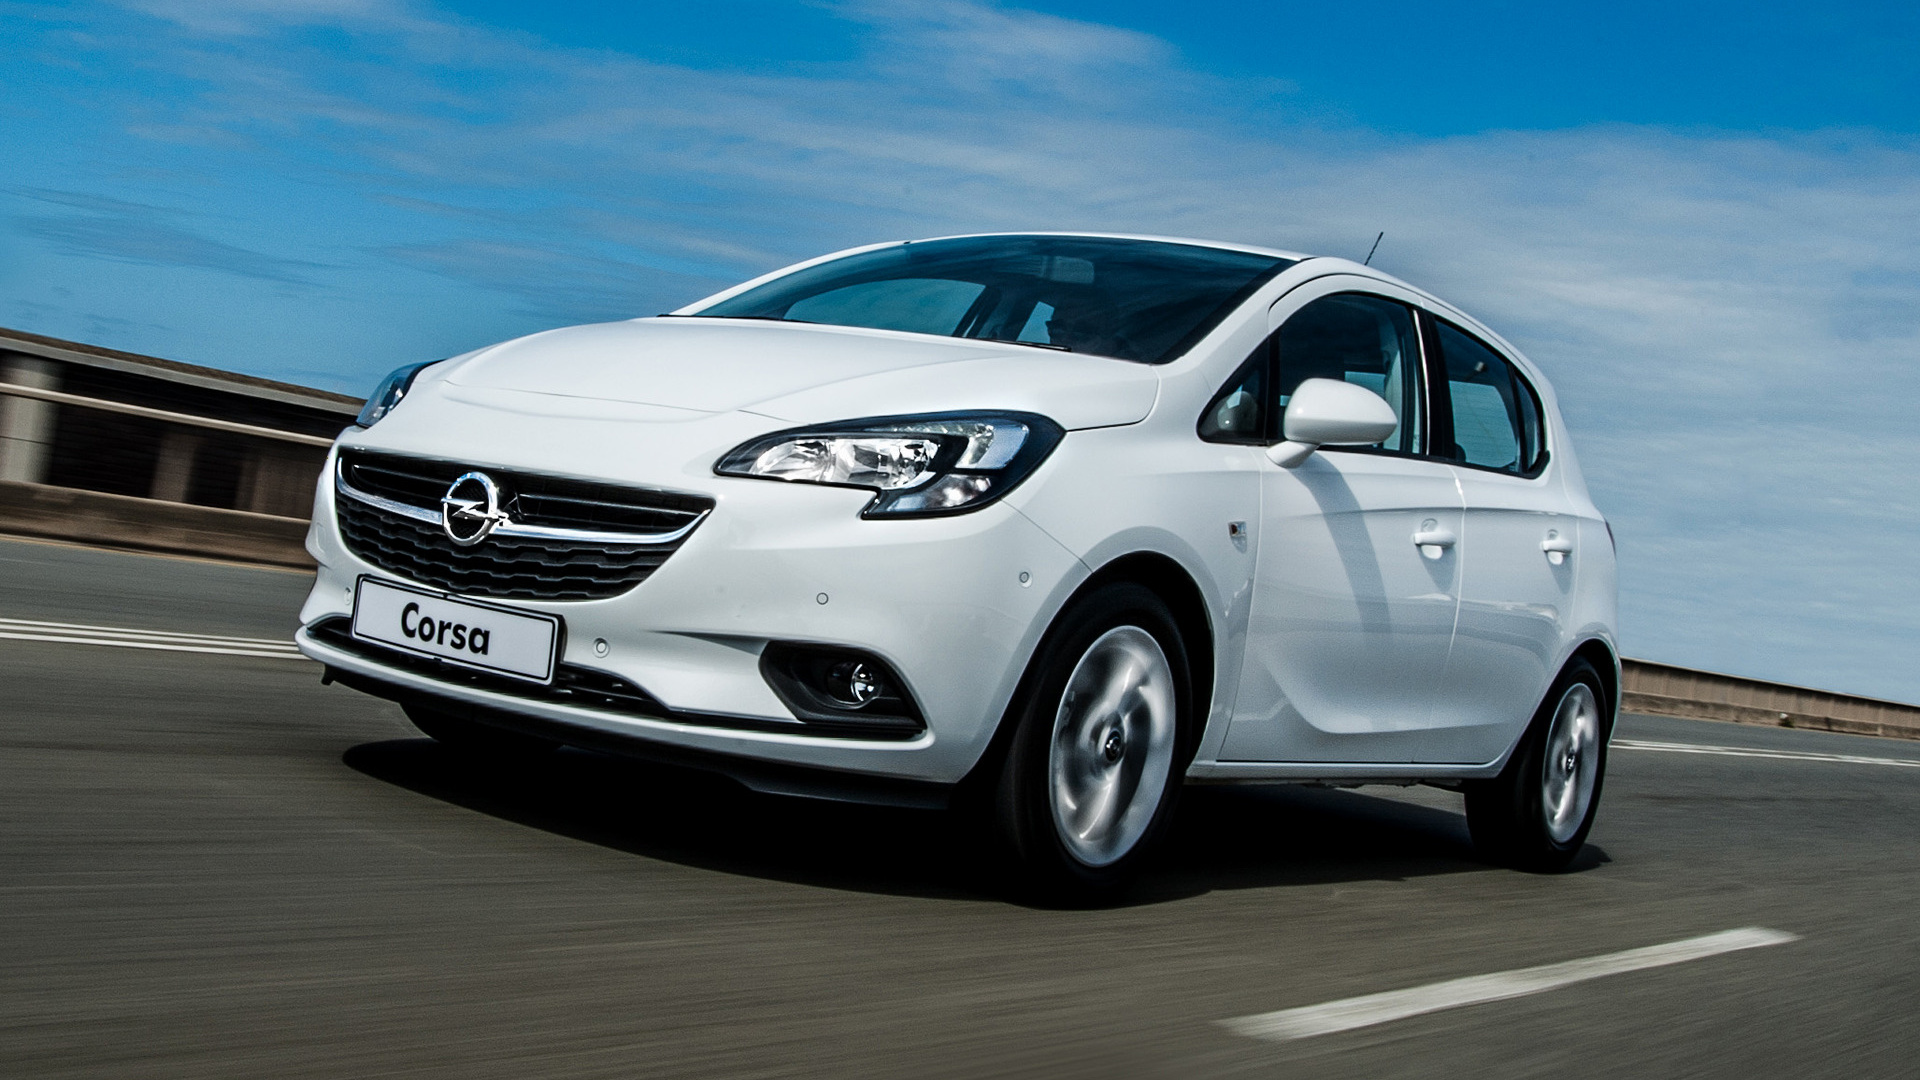 2019 Opel Corsa 5 door photo - 1